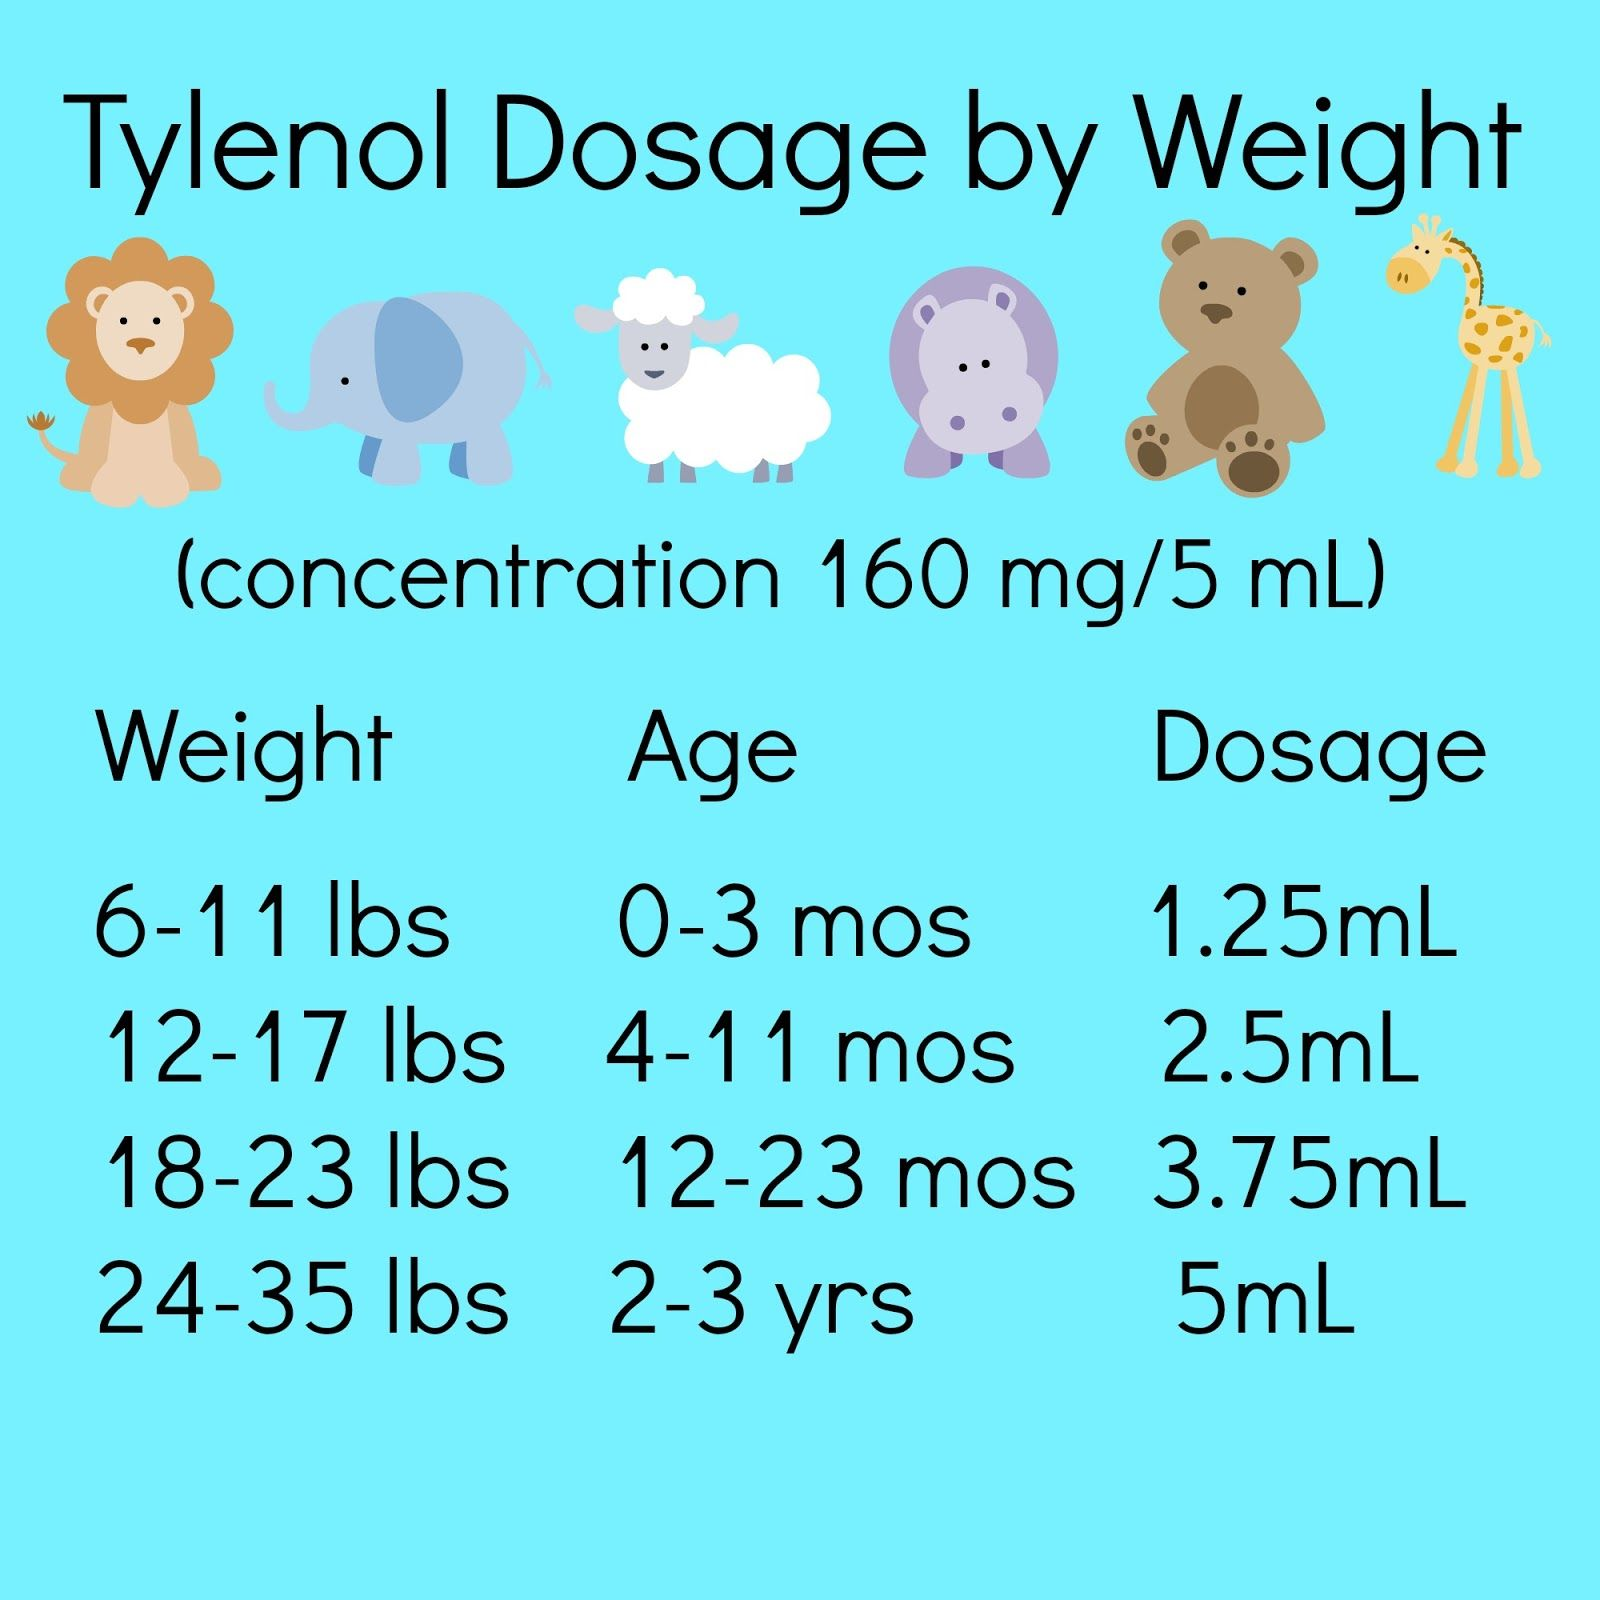 Tylenol dosage for babies and toddlers new concentration via tips on survival with a sick baby tylenol dosage chart by weight print this out and keep it with your childrens tylenol nvjuhfo Images